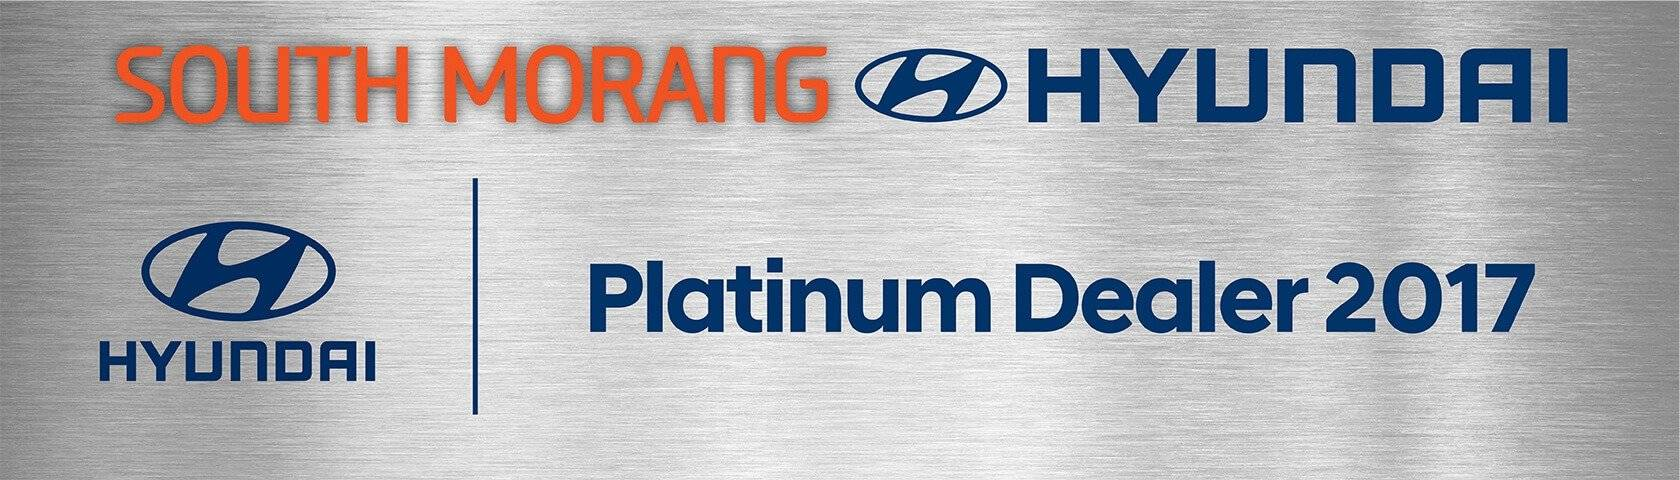 South Morang Hyundai Platinum Dealer 2017